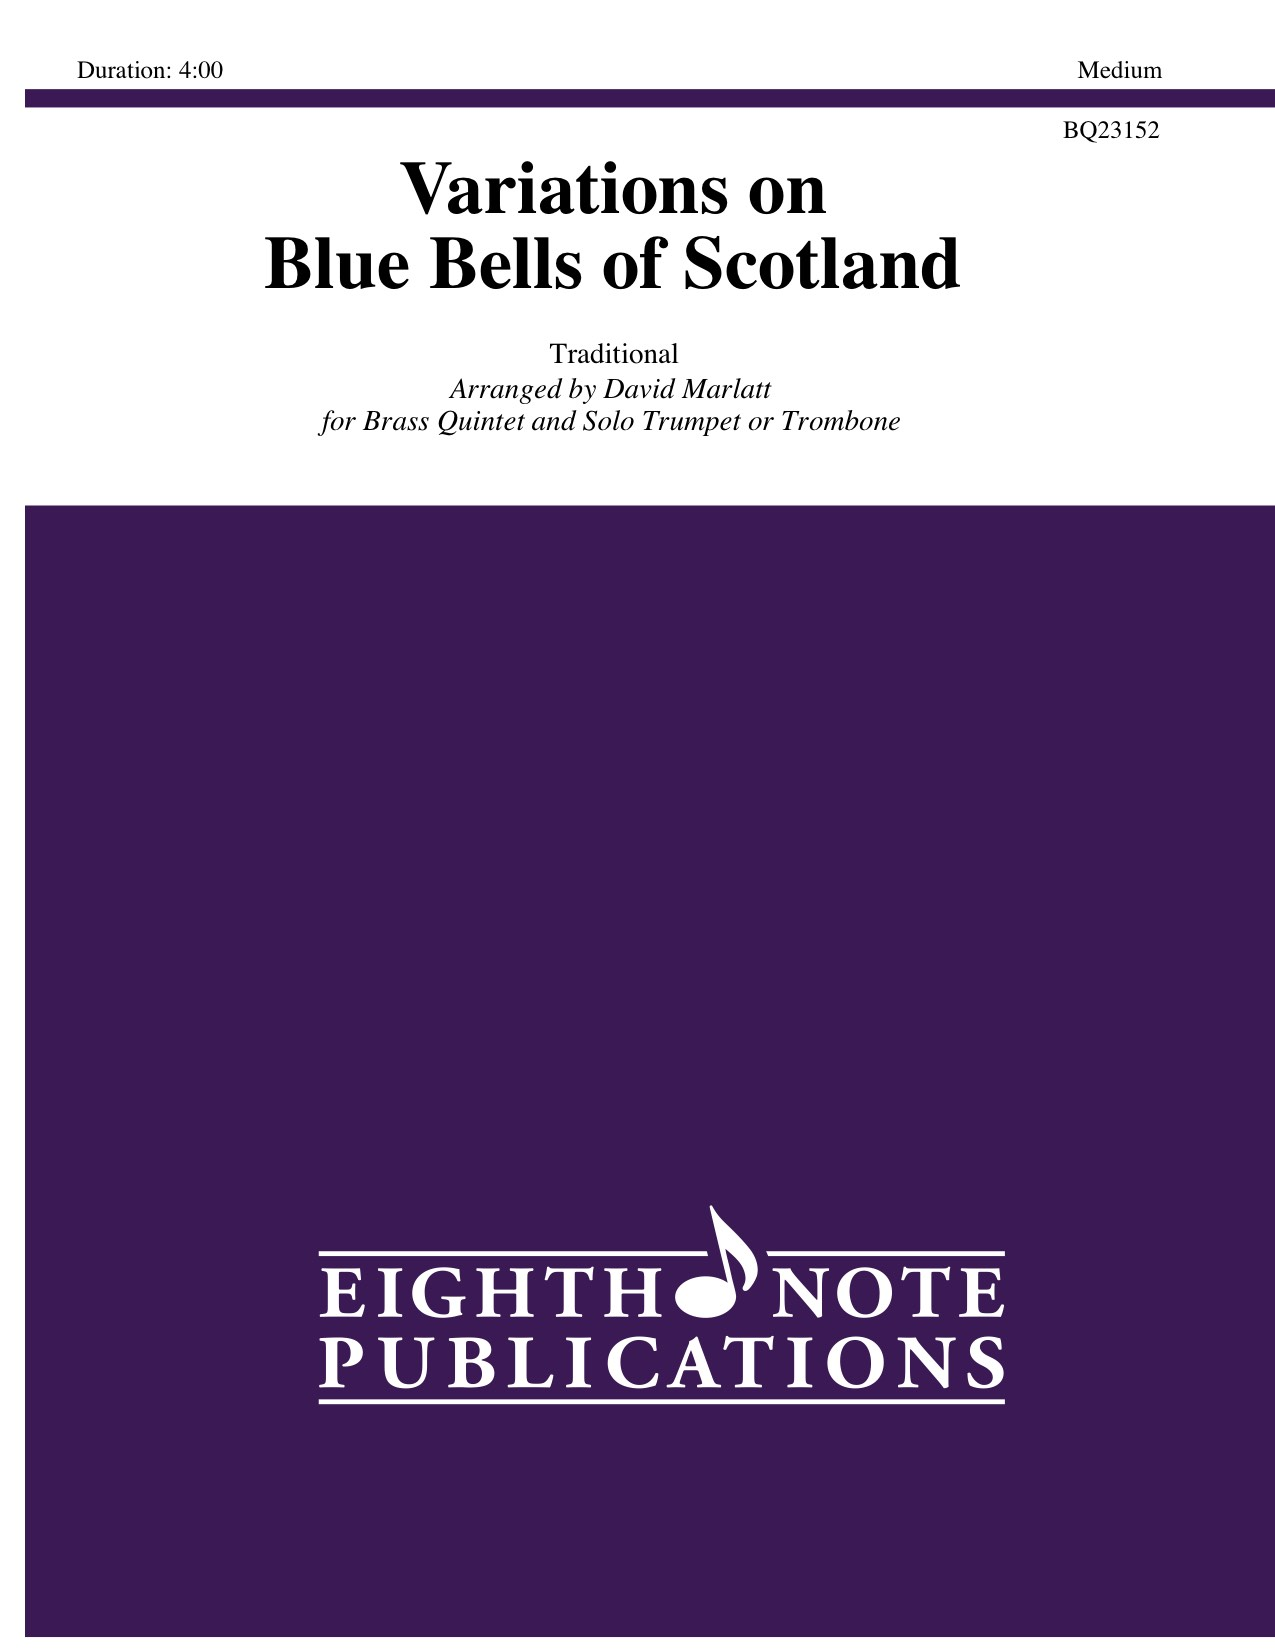 Variations on Blue Bells of Scotland -  Traditional